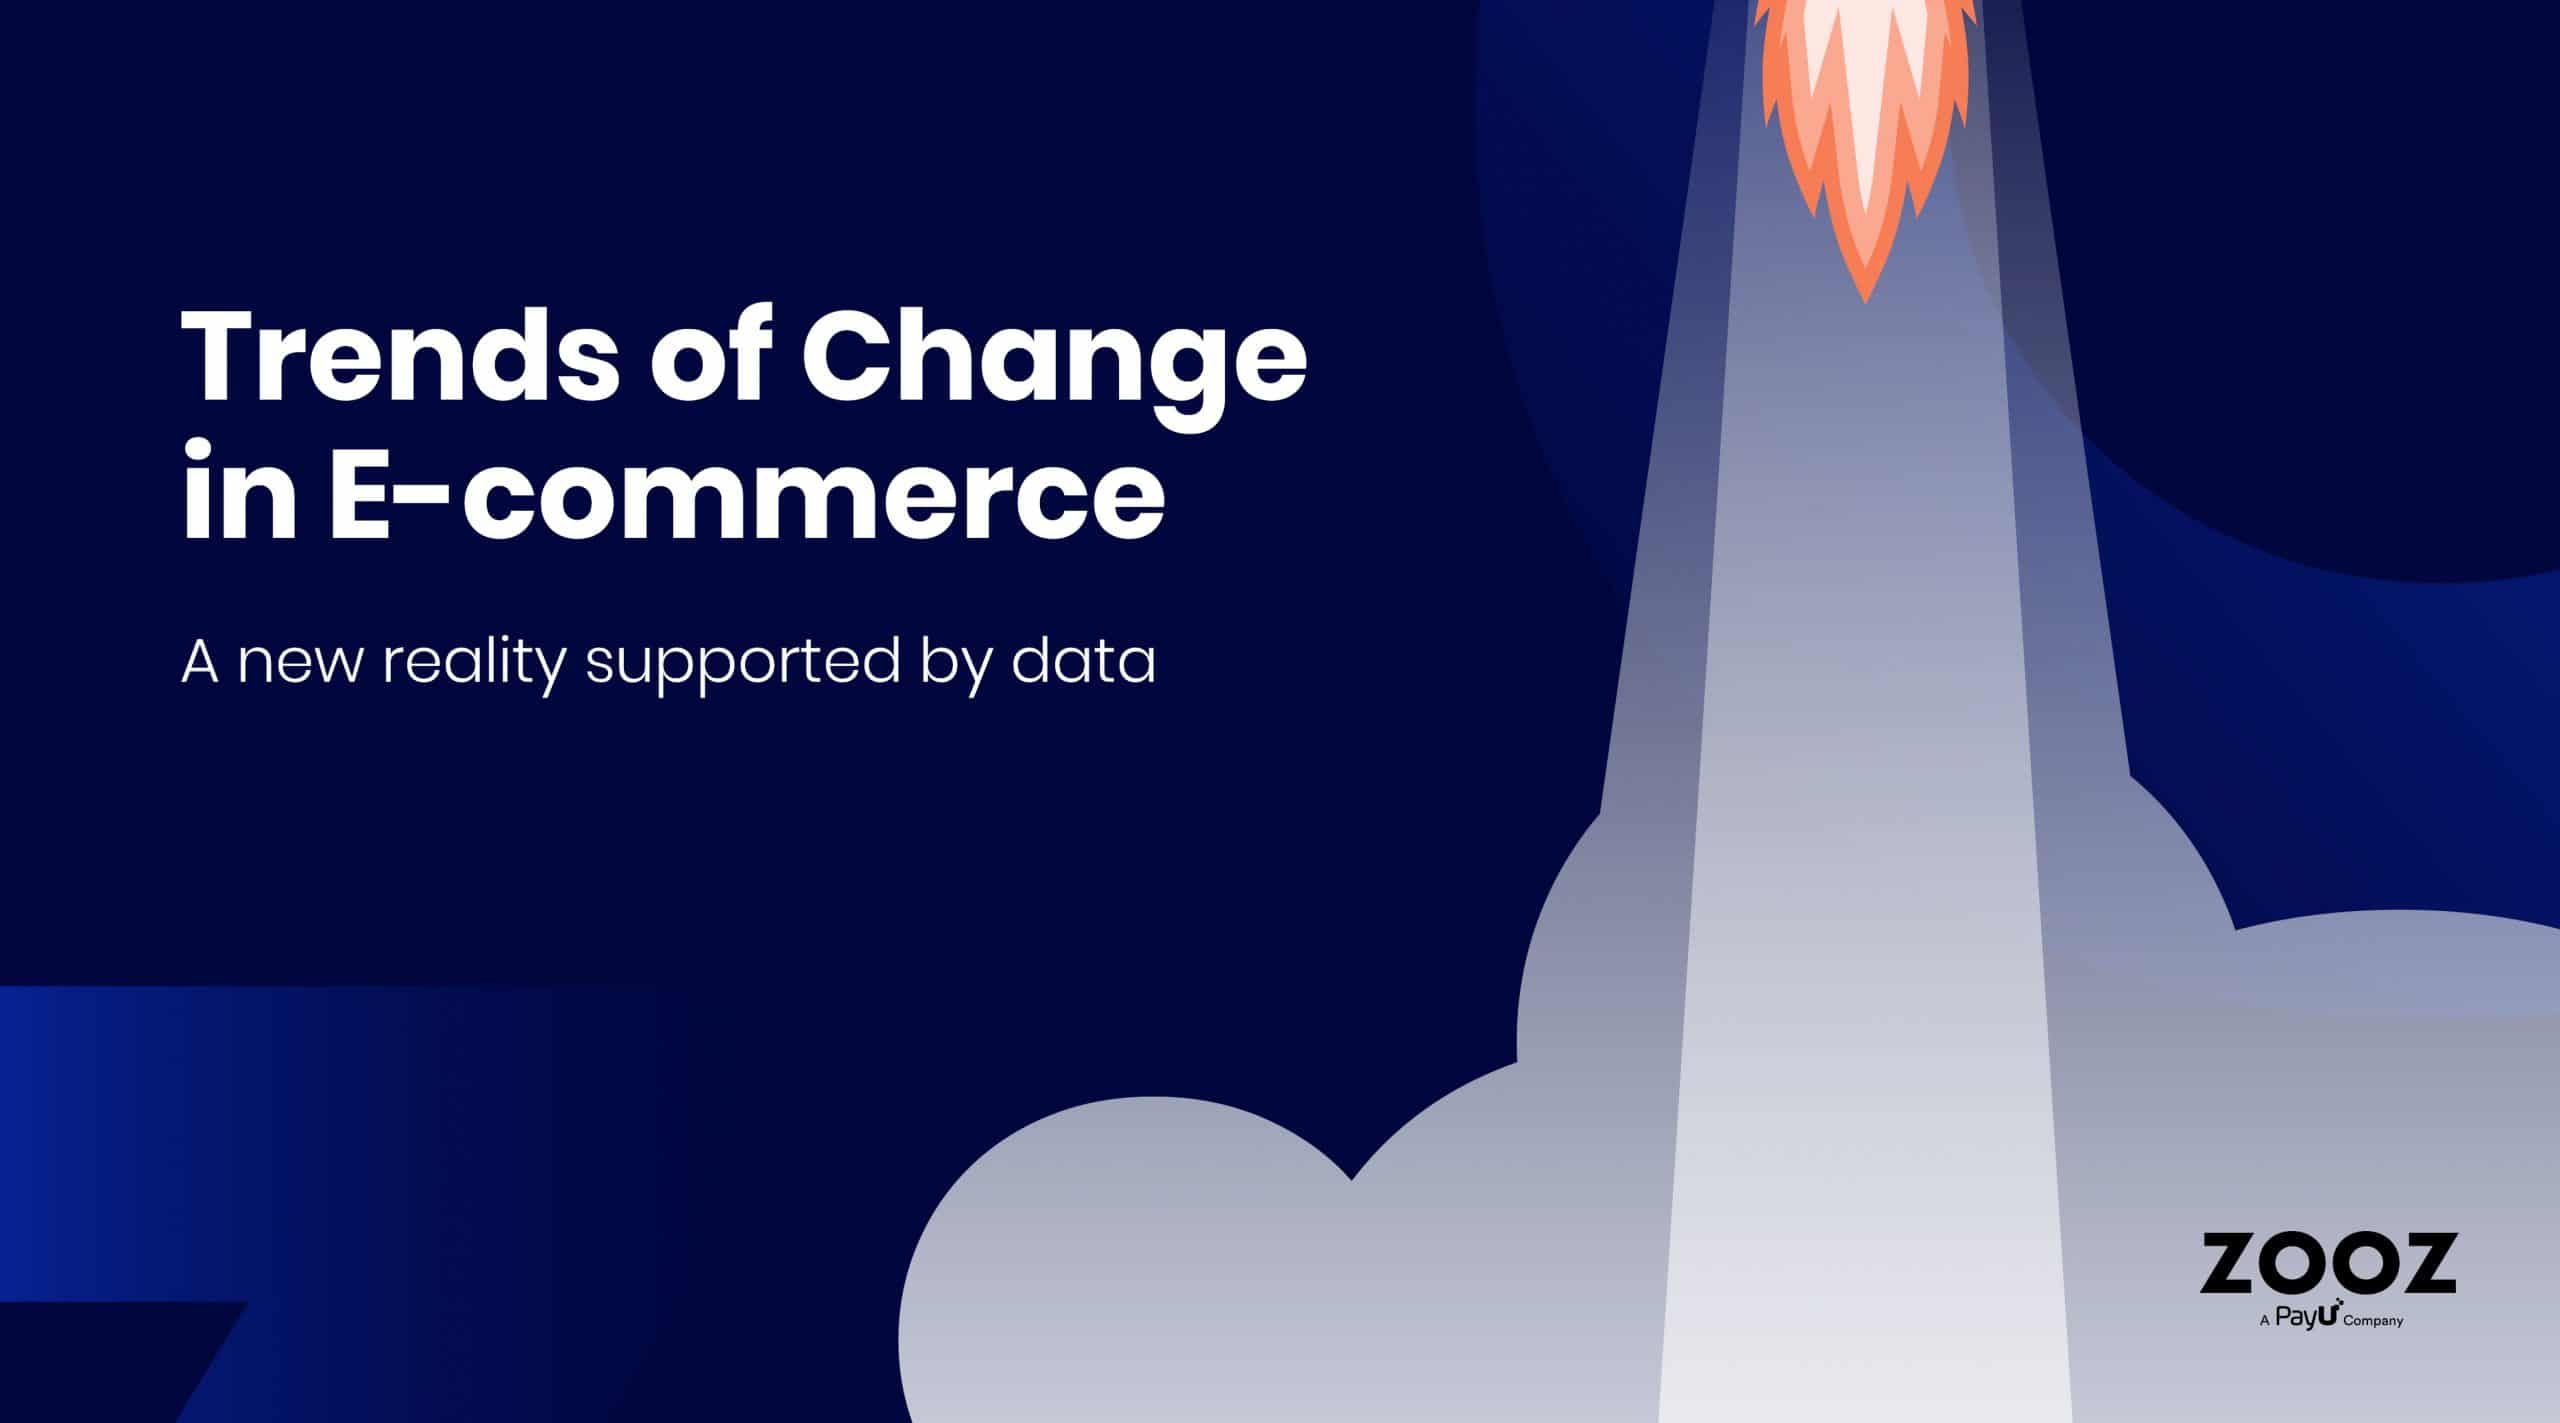 Trends of Change in E-commerce